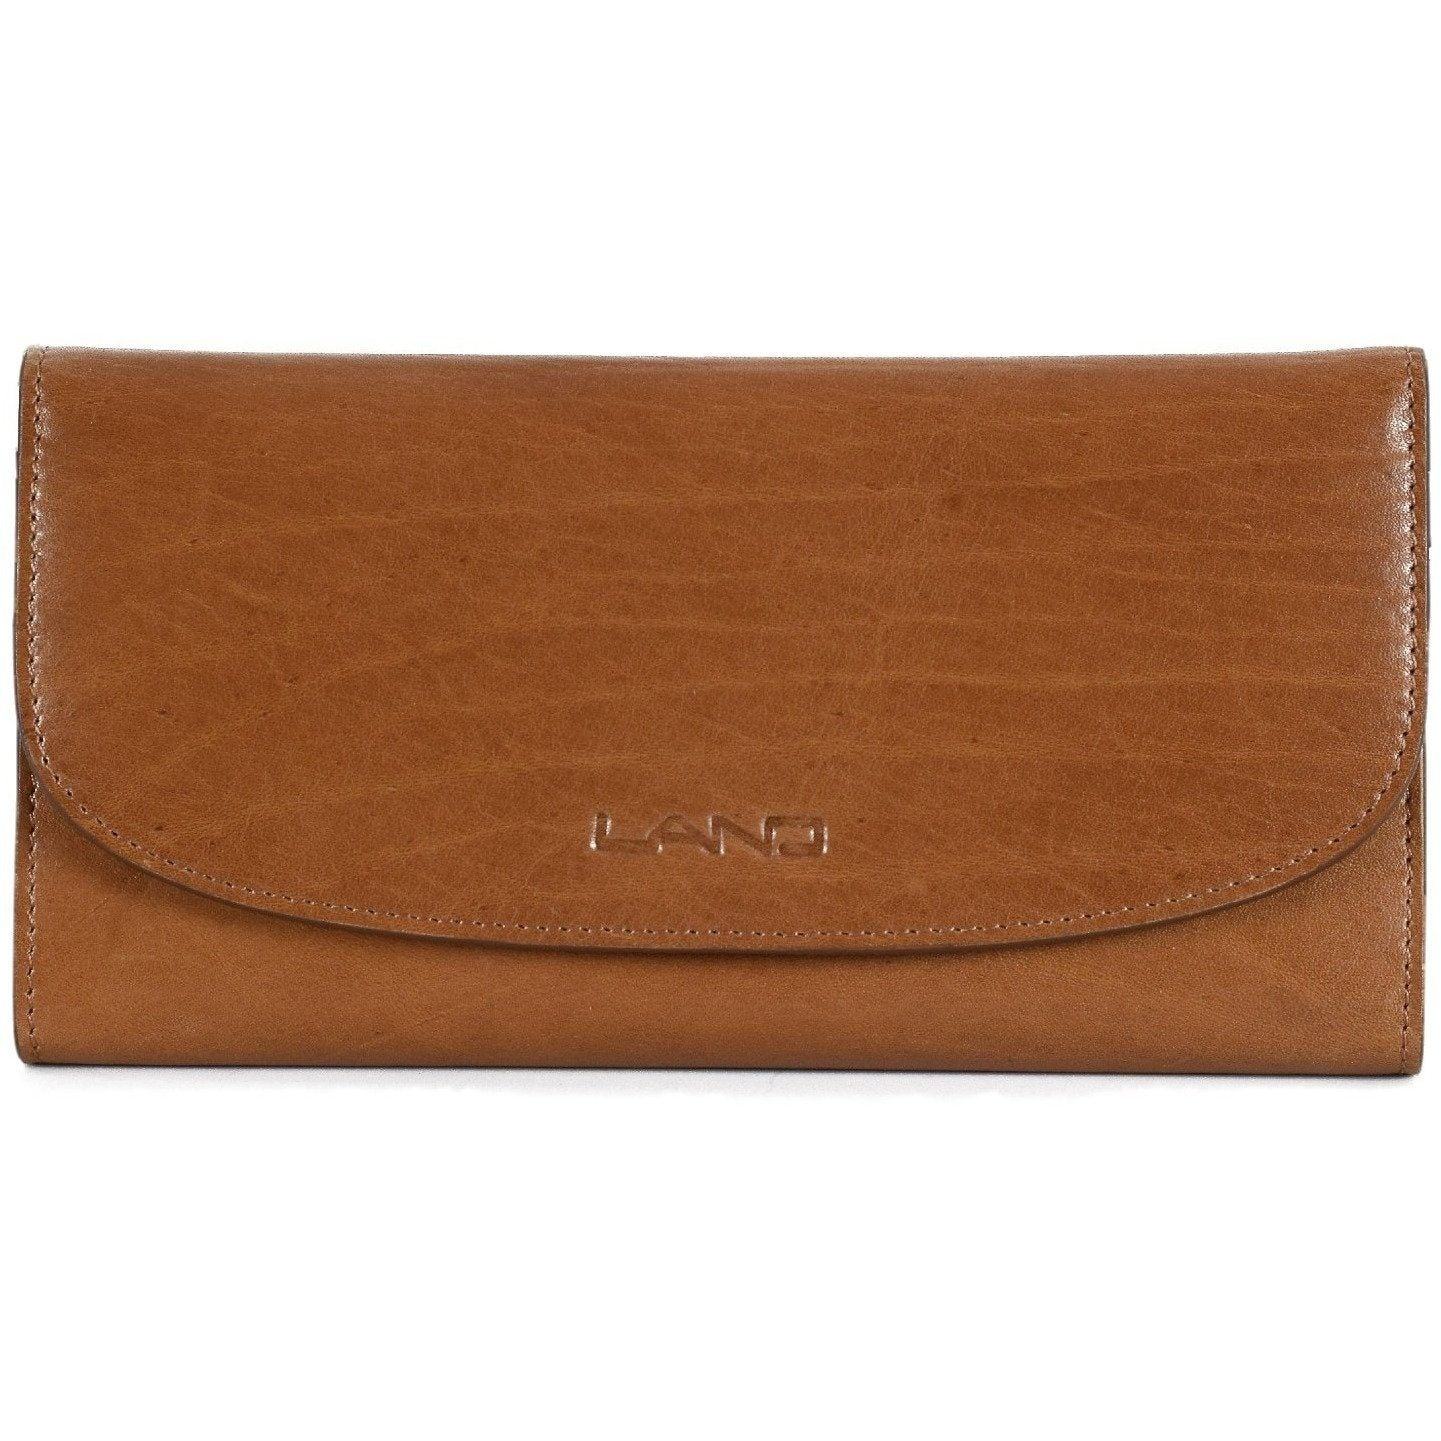 Limited Ladies Wallet